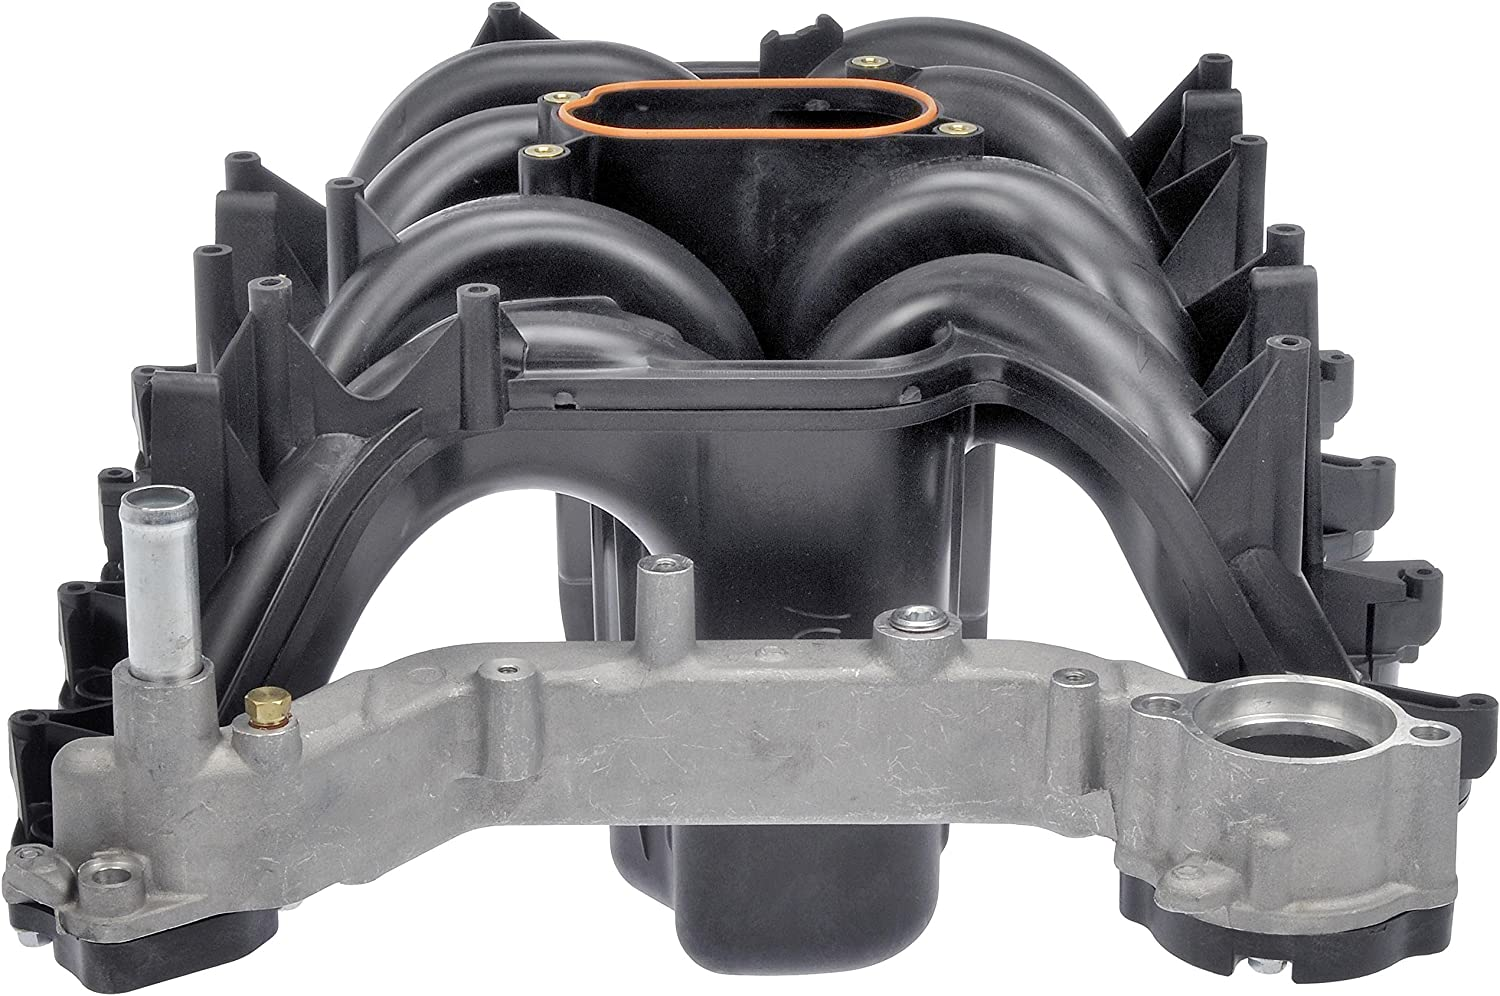 Inlet Oem Ford 2L1z9424aa Manifold Assembly